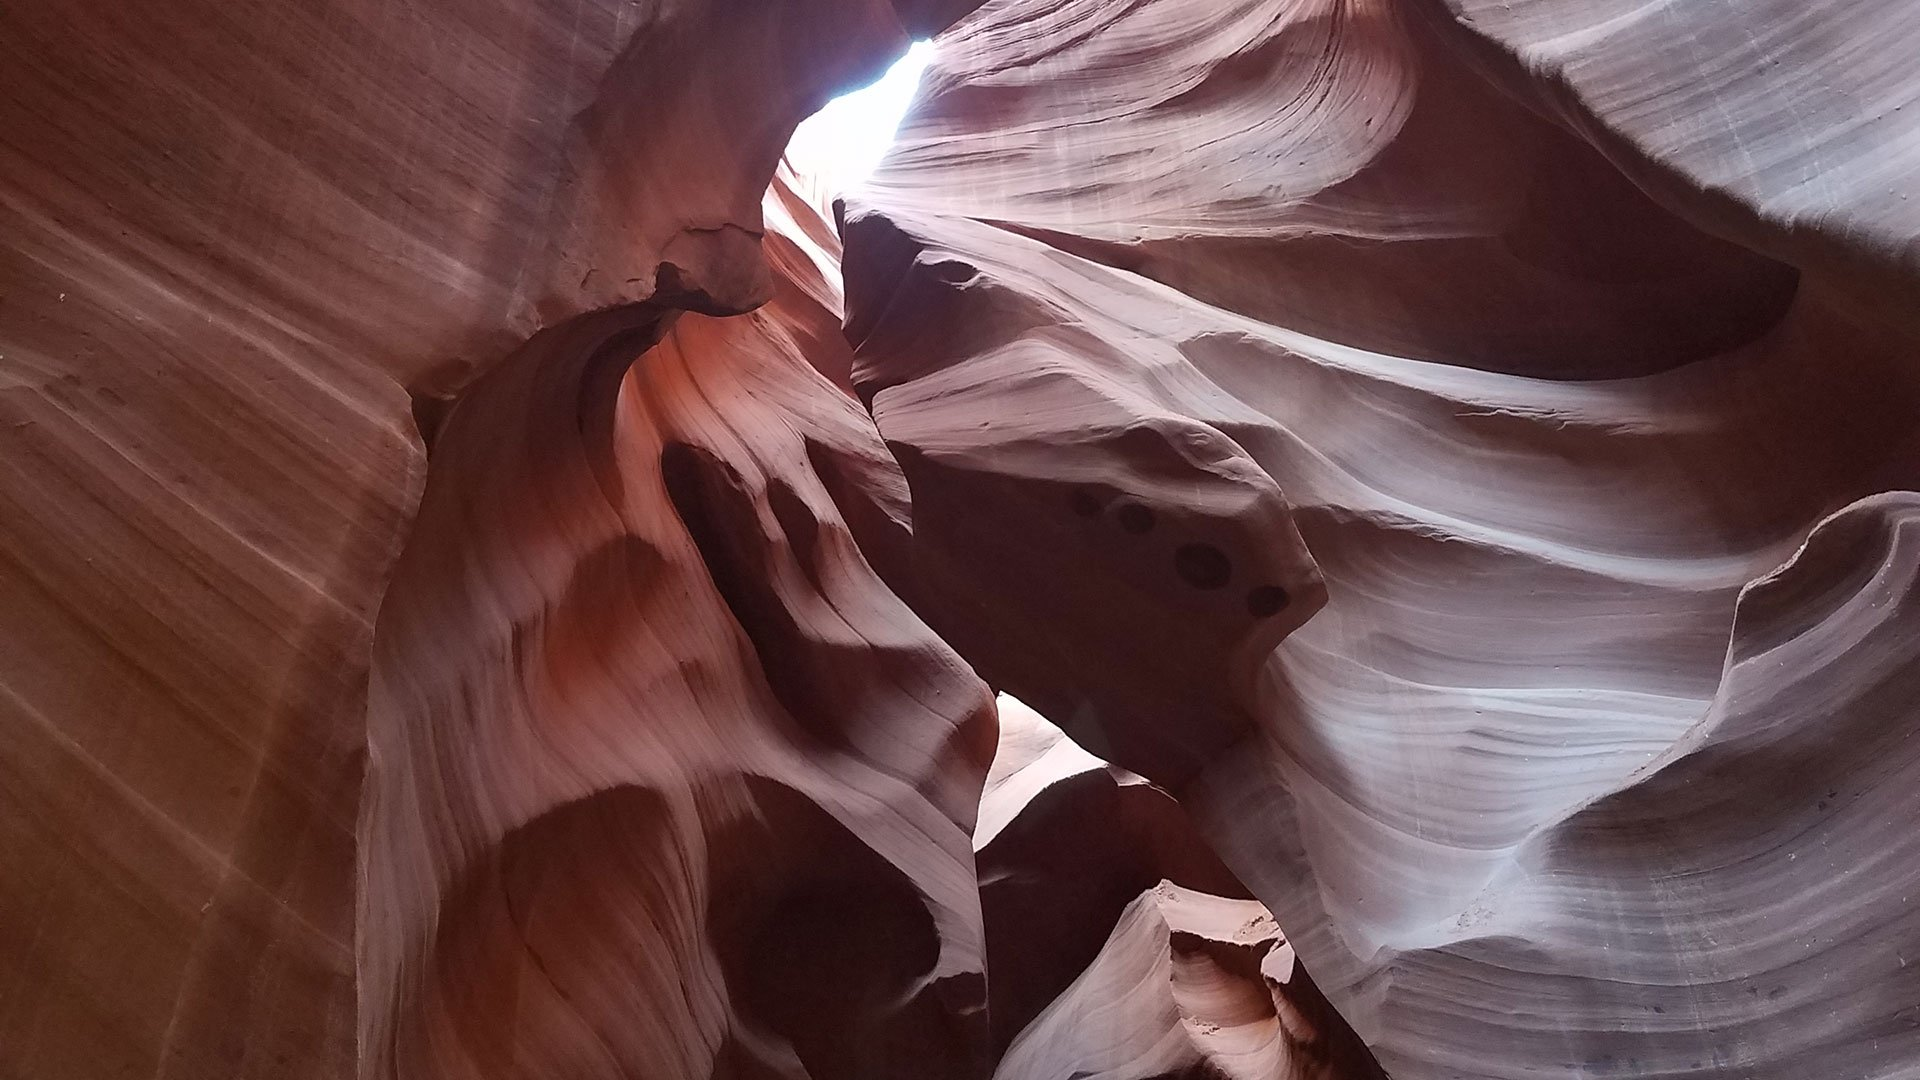 Twisting rock formations found within Antelope Canyon.